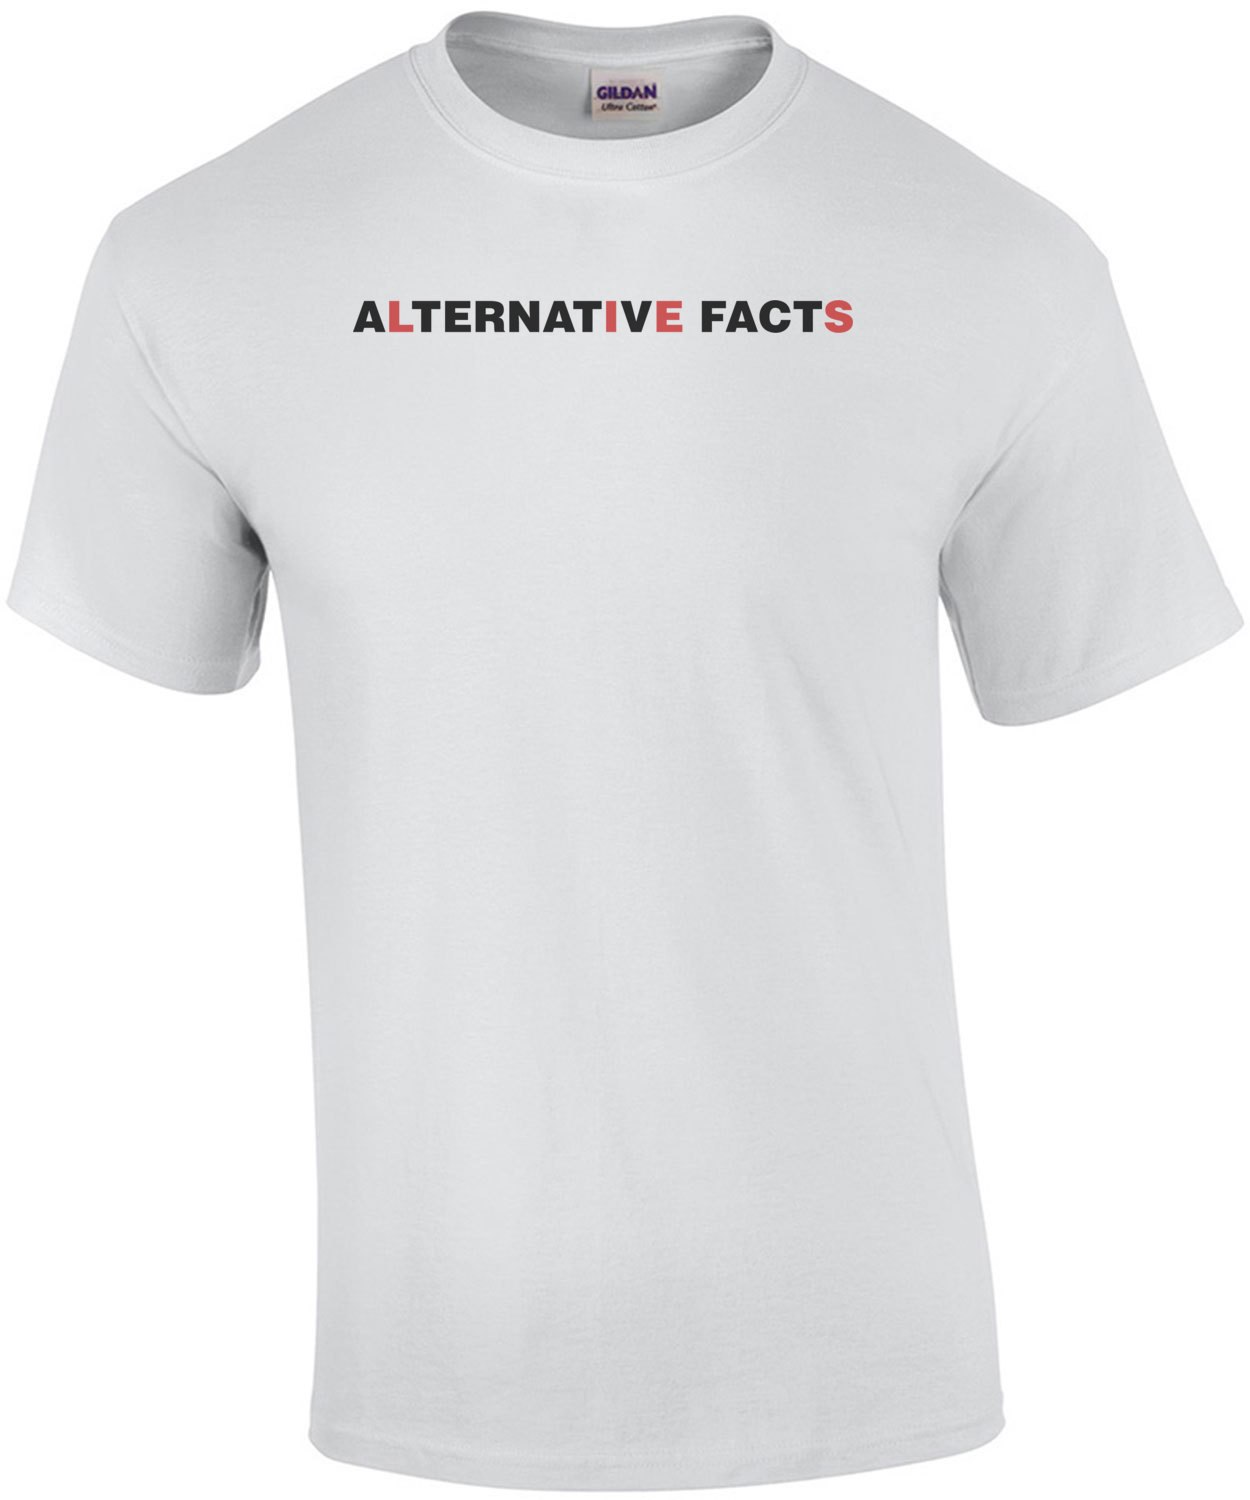 Alternative Facts Are Lies T-Shirt